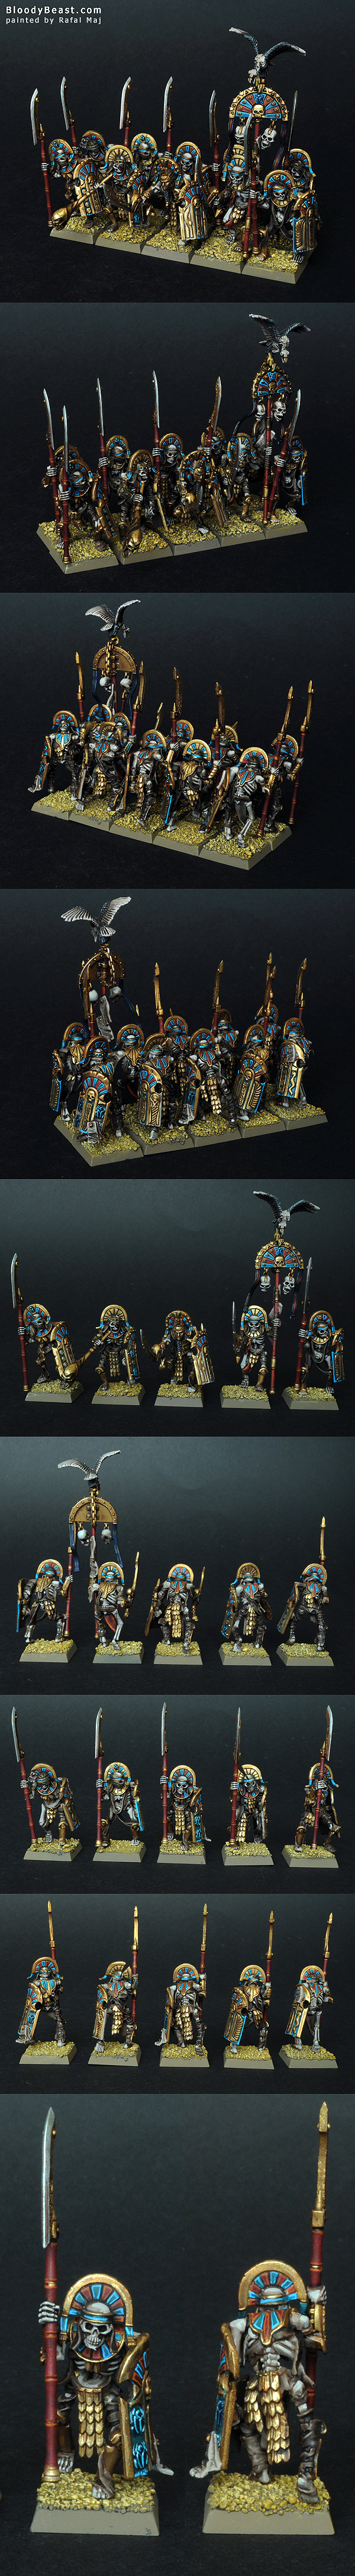 Tomb Kings Tomb Guards with Helbards and Shields painted by Rafal Maj (BloodyBeast.com)